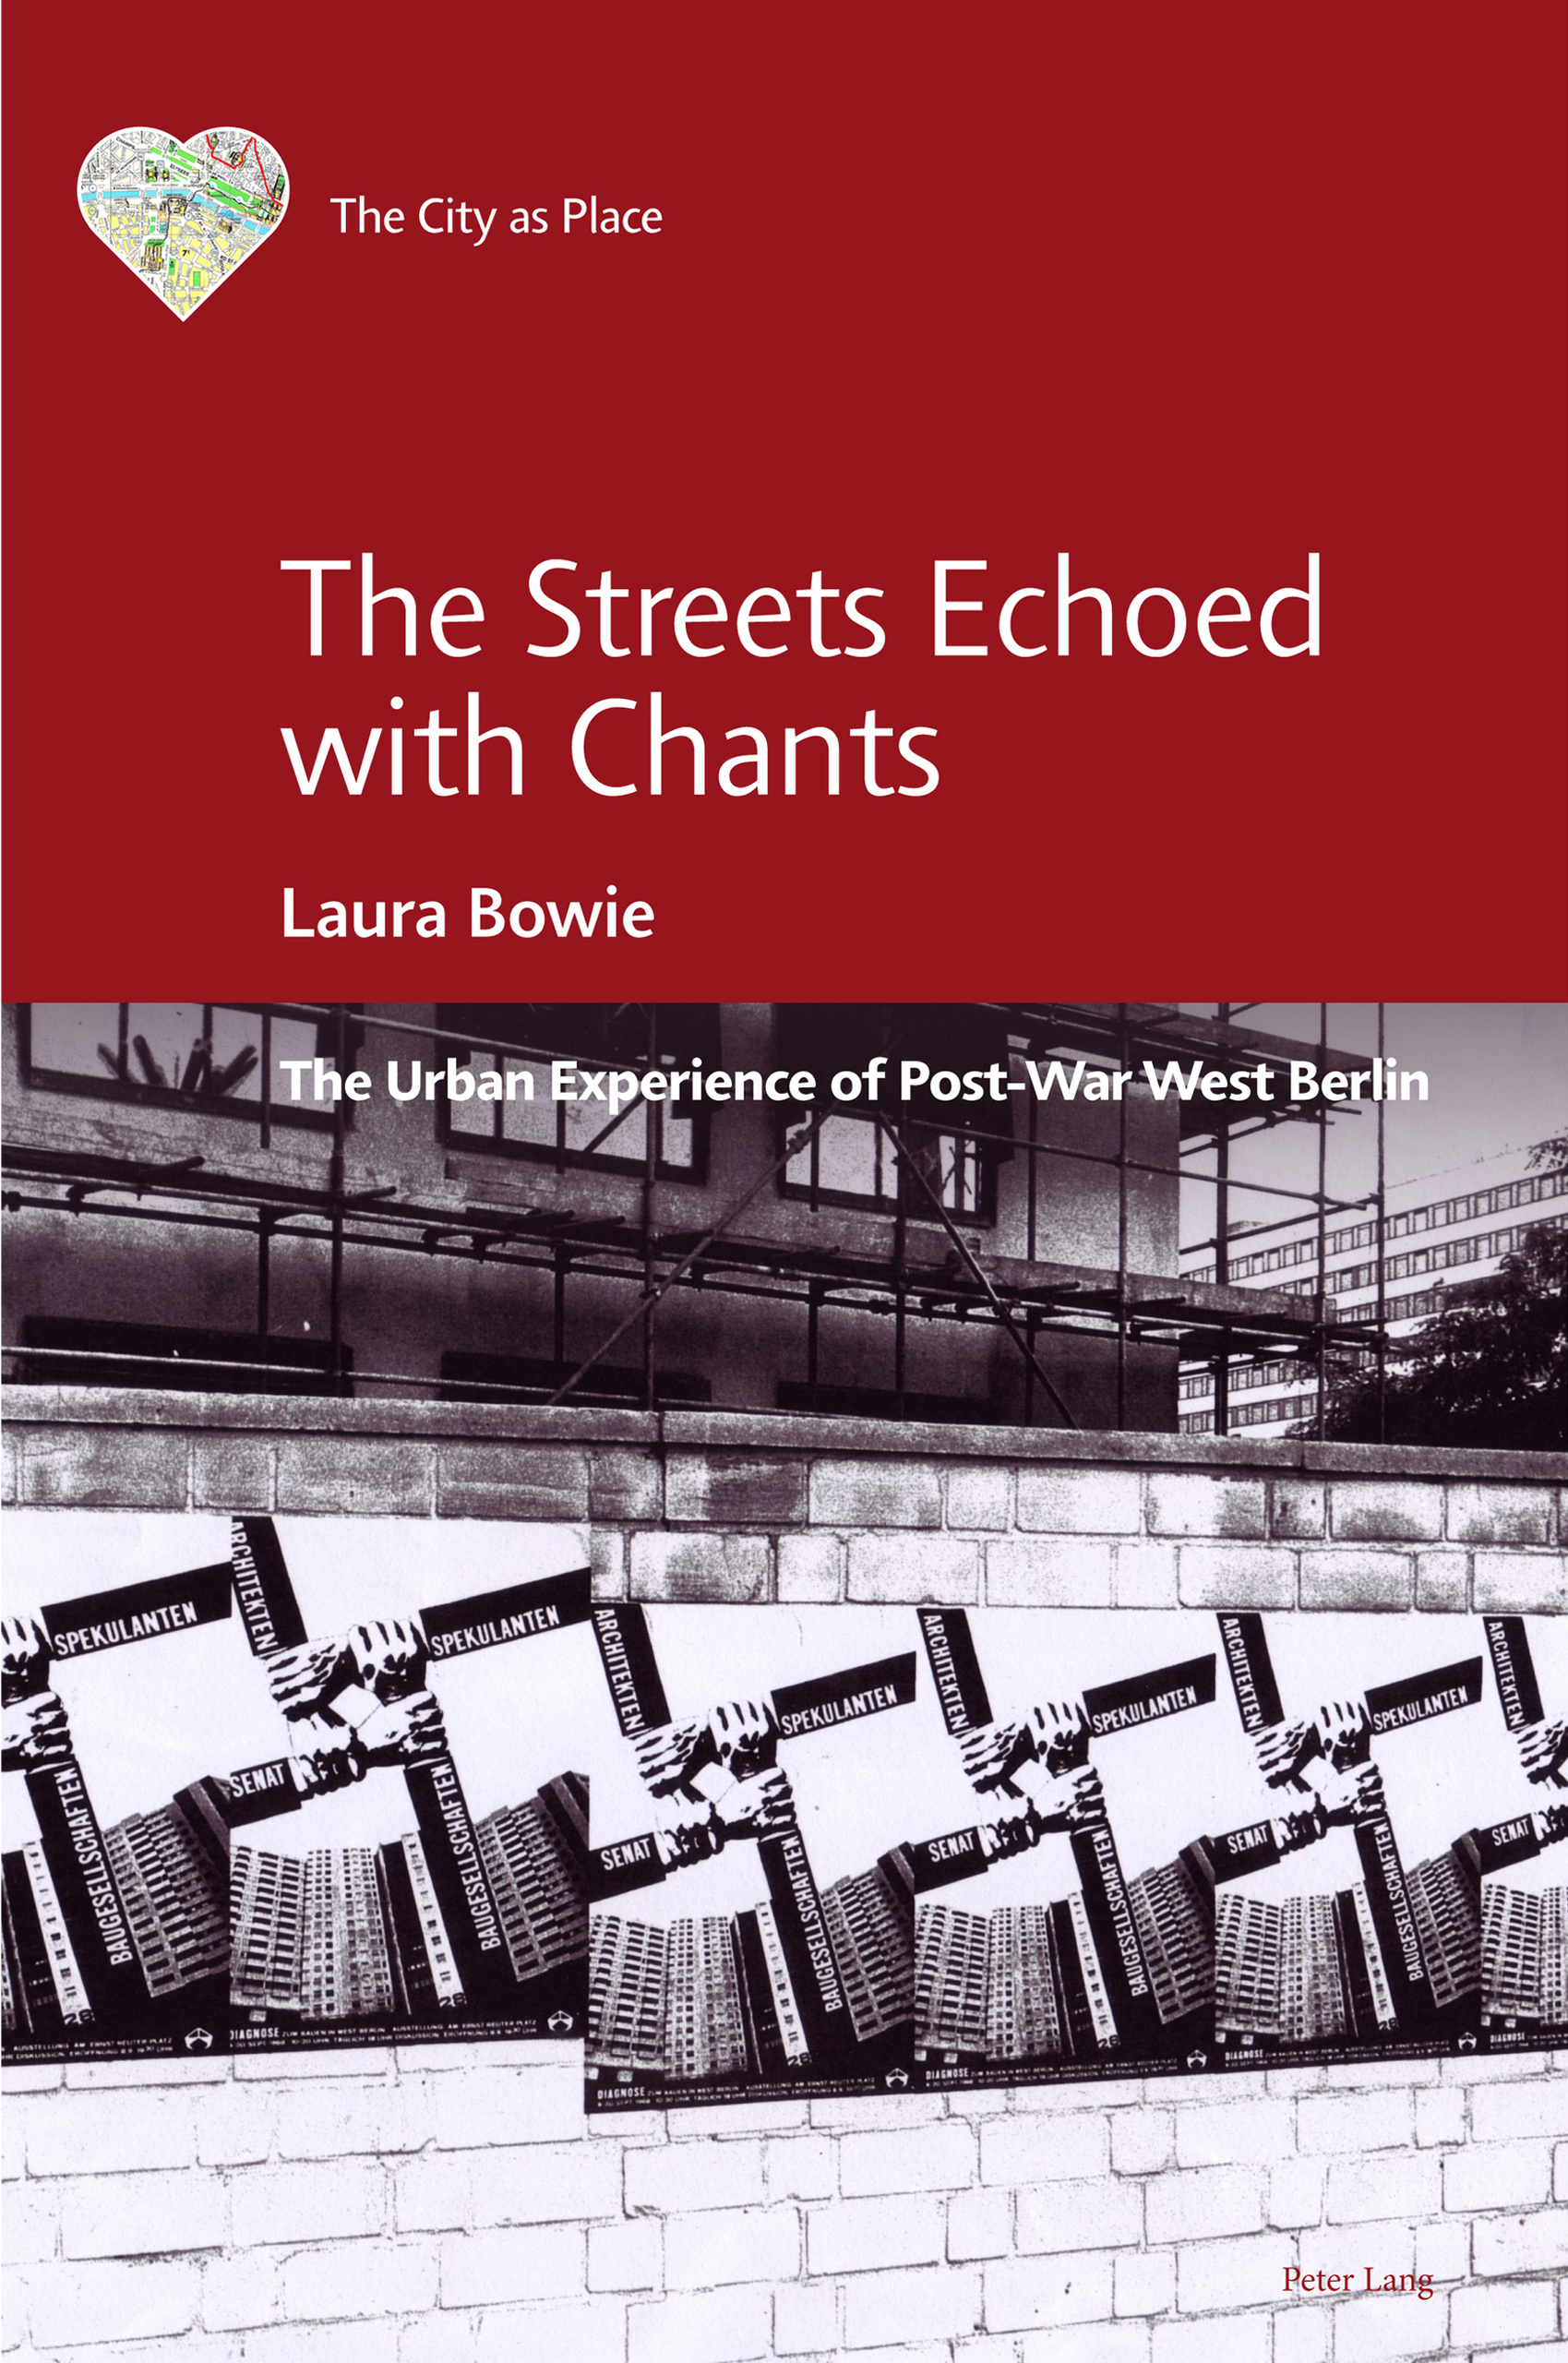 Title: The Streets Echoed with Chants